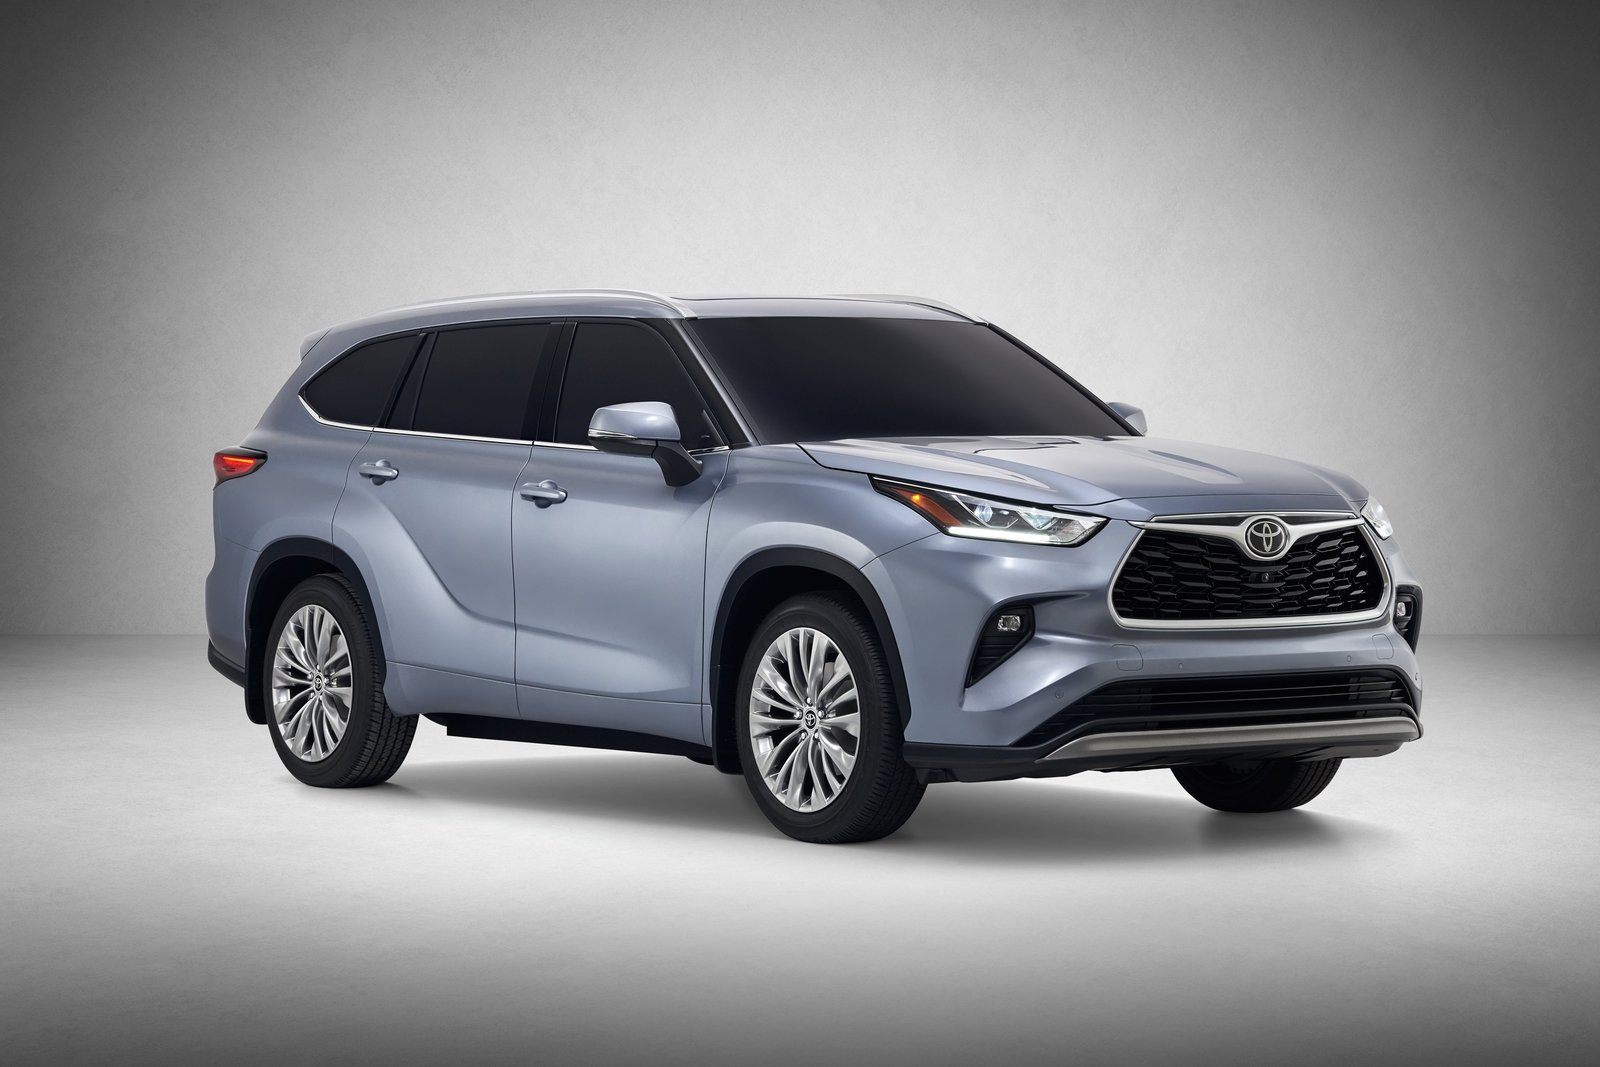 the 2020 toyota highlander debuts with an all-new look and